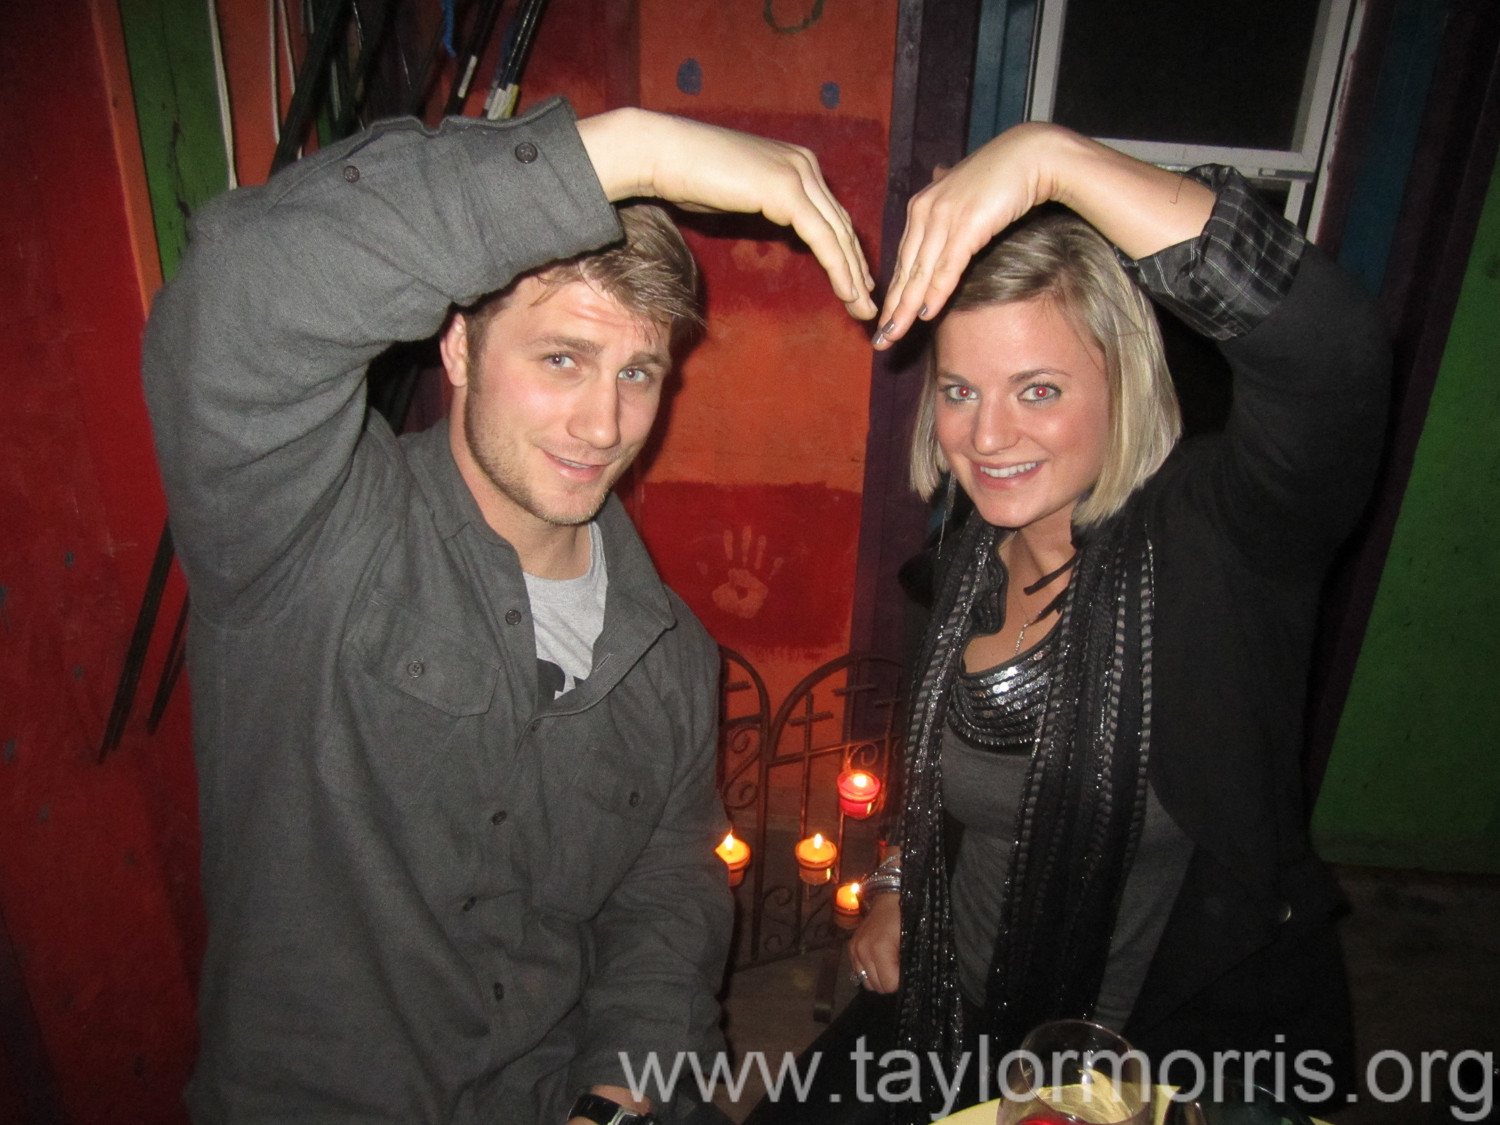 This image is of 7 years back, Taylor with his girlfriend Danielle.